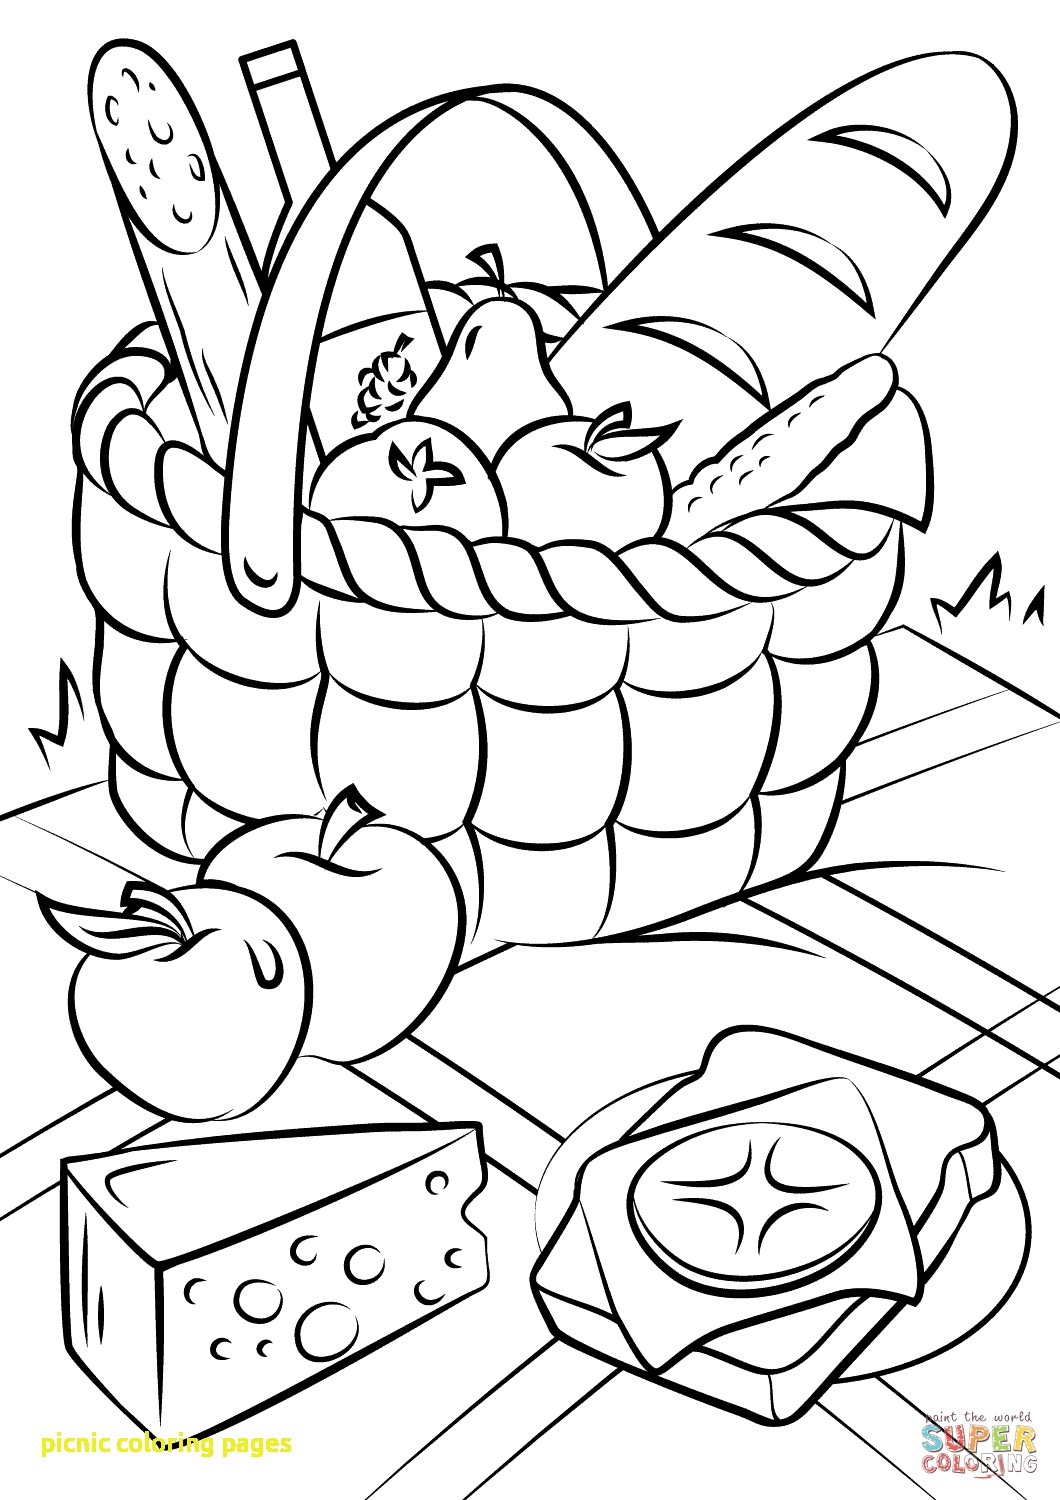 1060x1500 Picnic Coloring Page